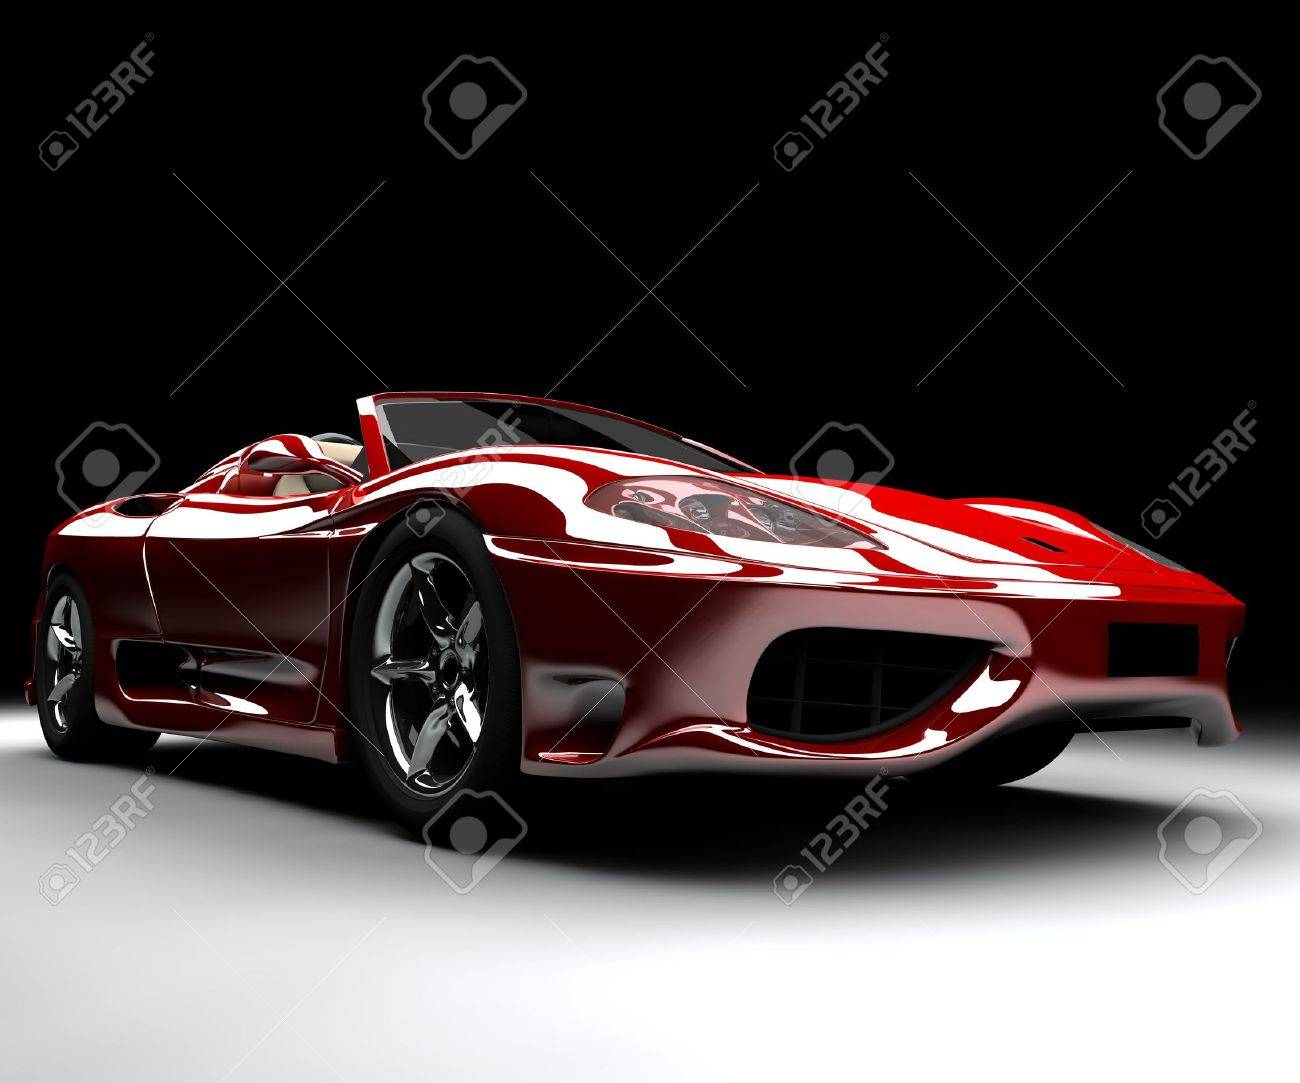 A front red car Stock Photo - 5340921